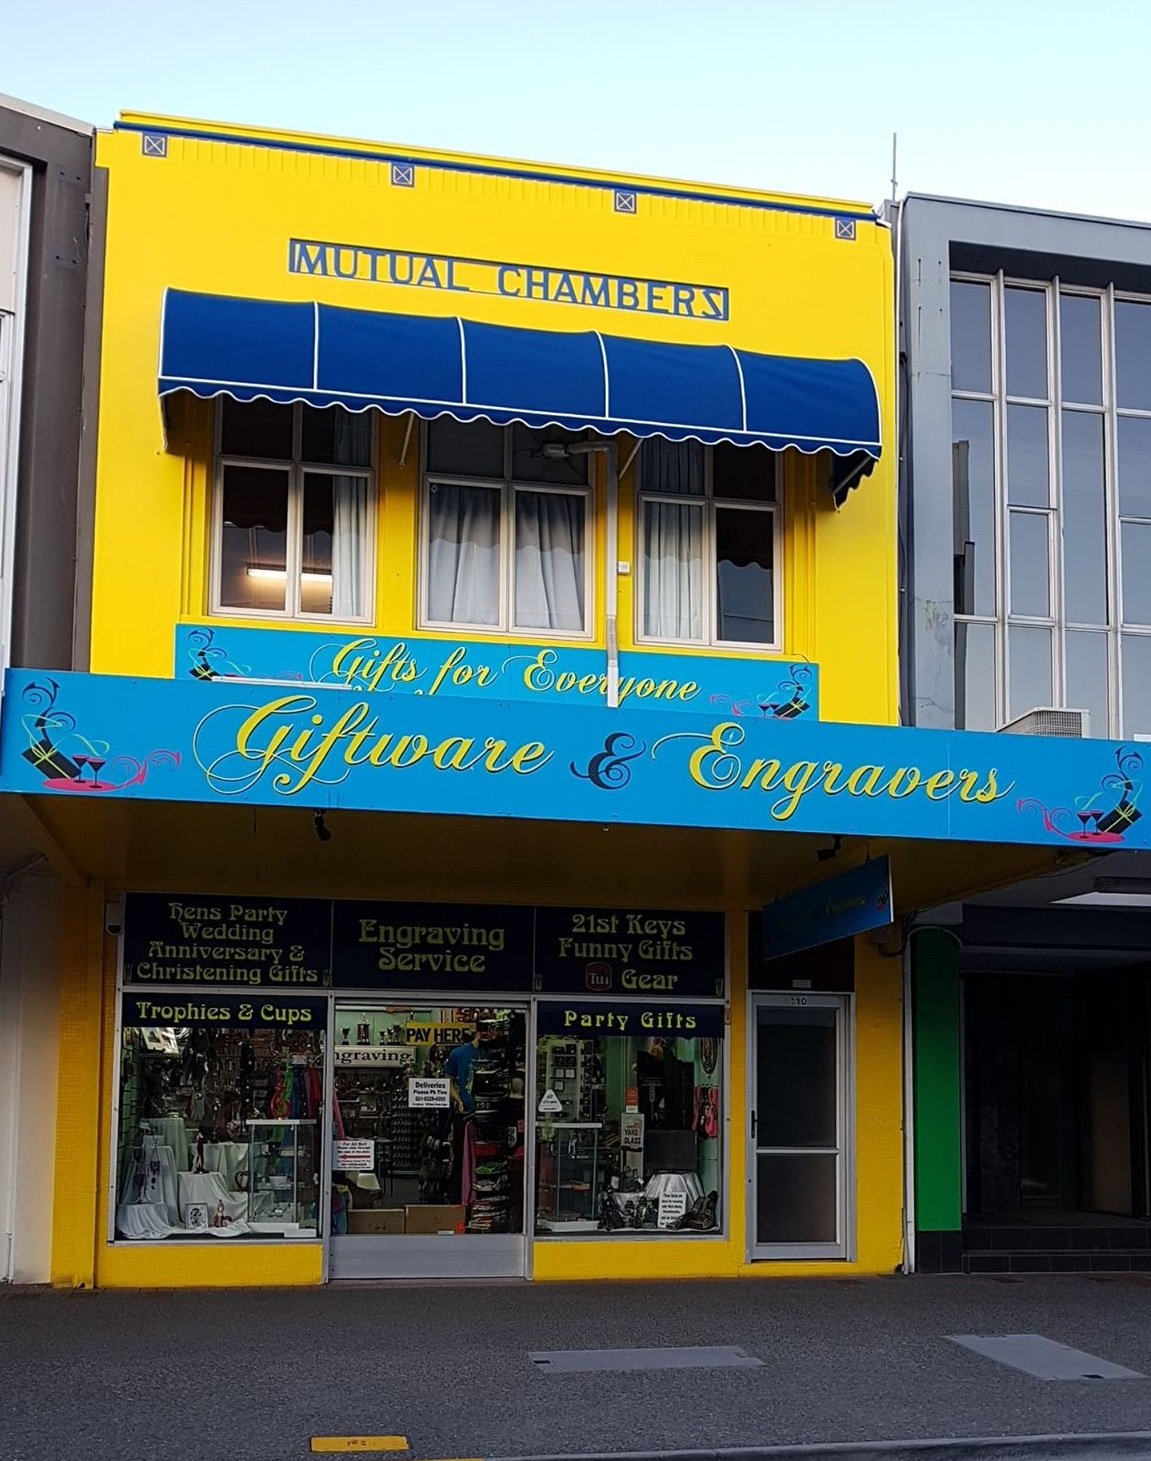 Giftware & Engravers: Store Front at 108 Hastings St, Napier, New Zealand